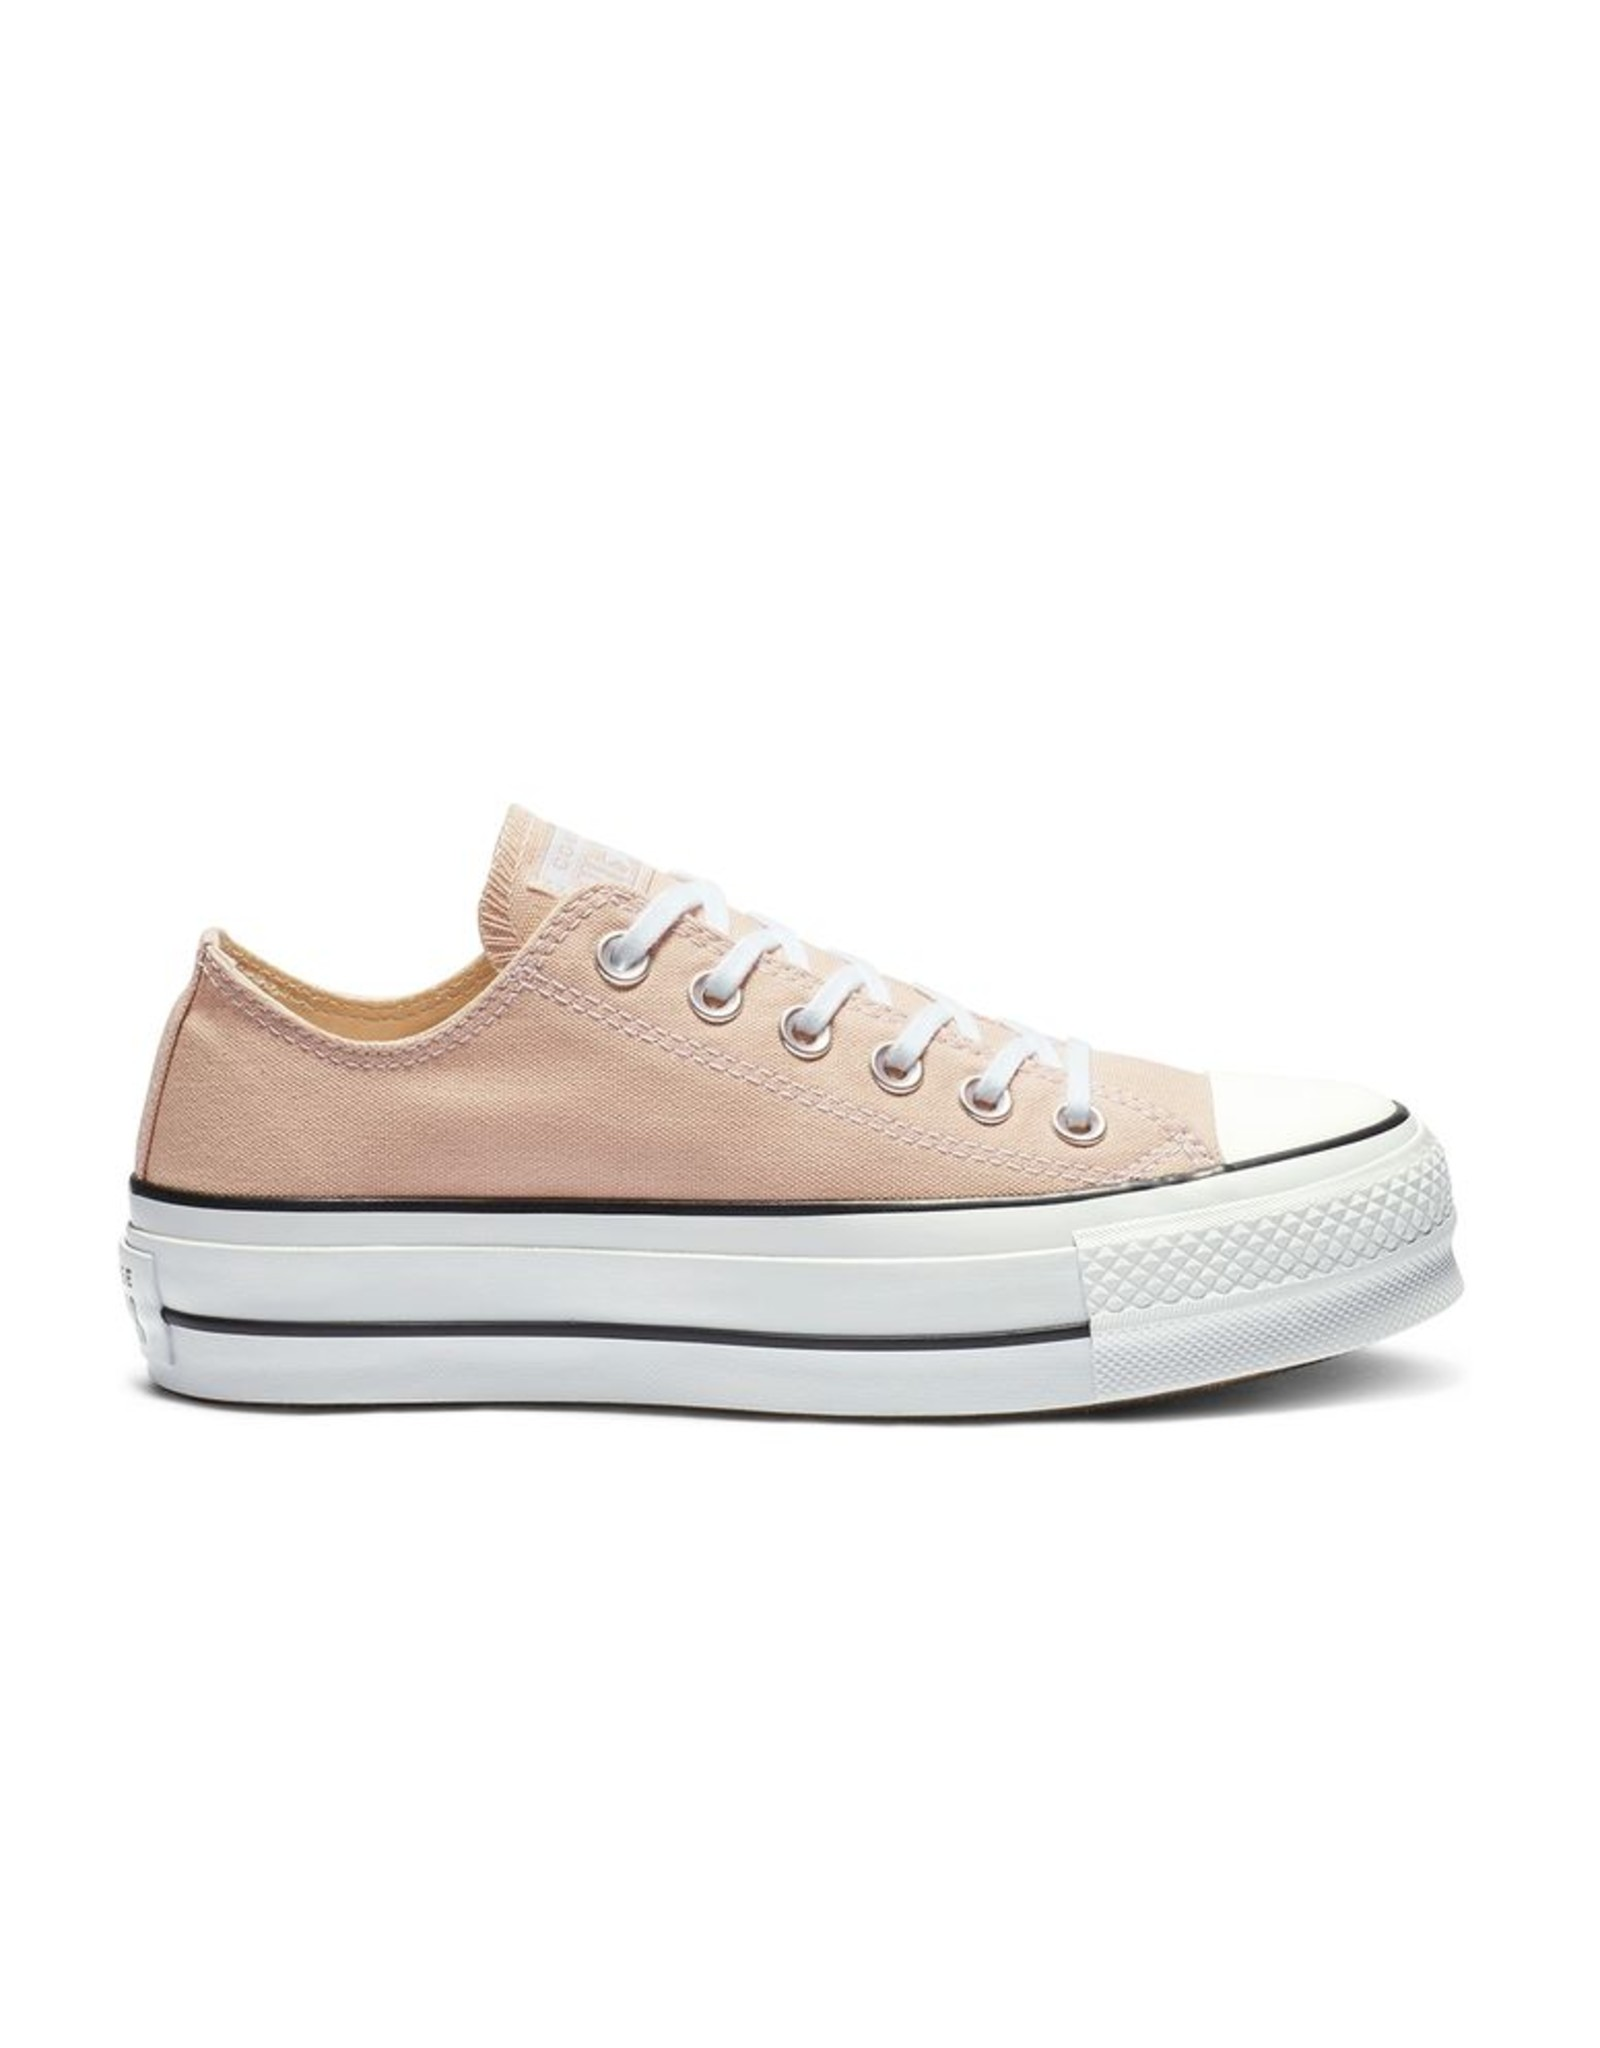 CONVERSE CHUCK TAYLOR ALL STAR LIFT OX PARTICLE BEIGE/WHITE/BLACK C13LP-563497C